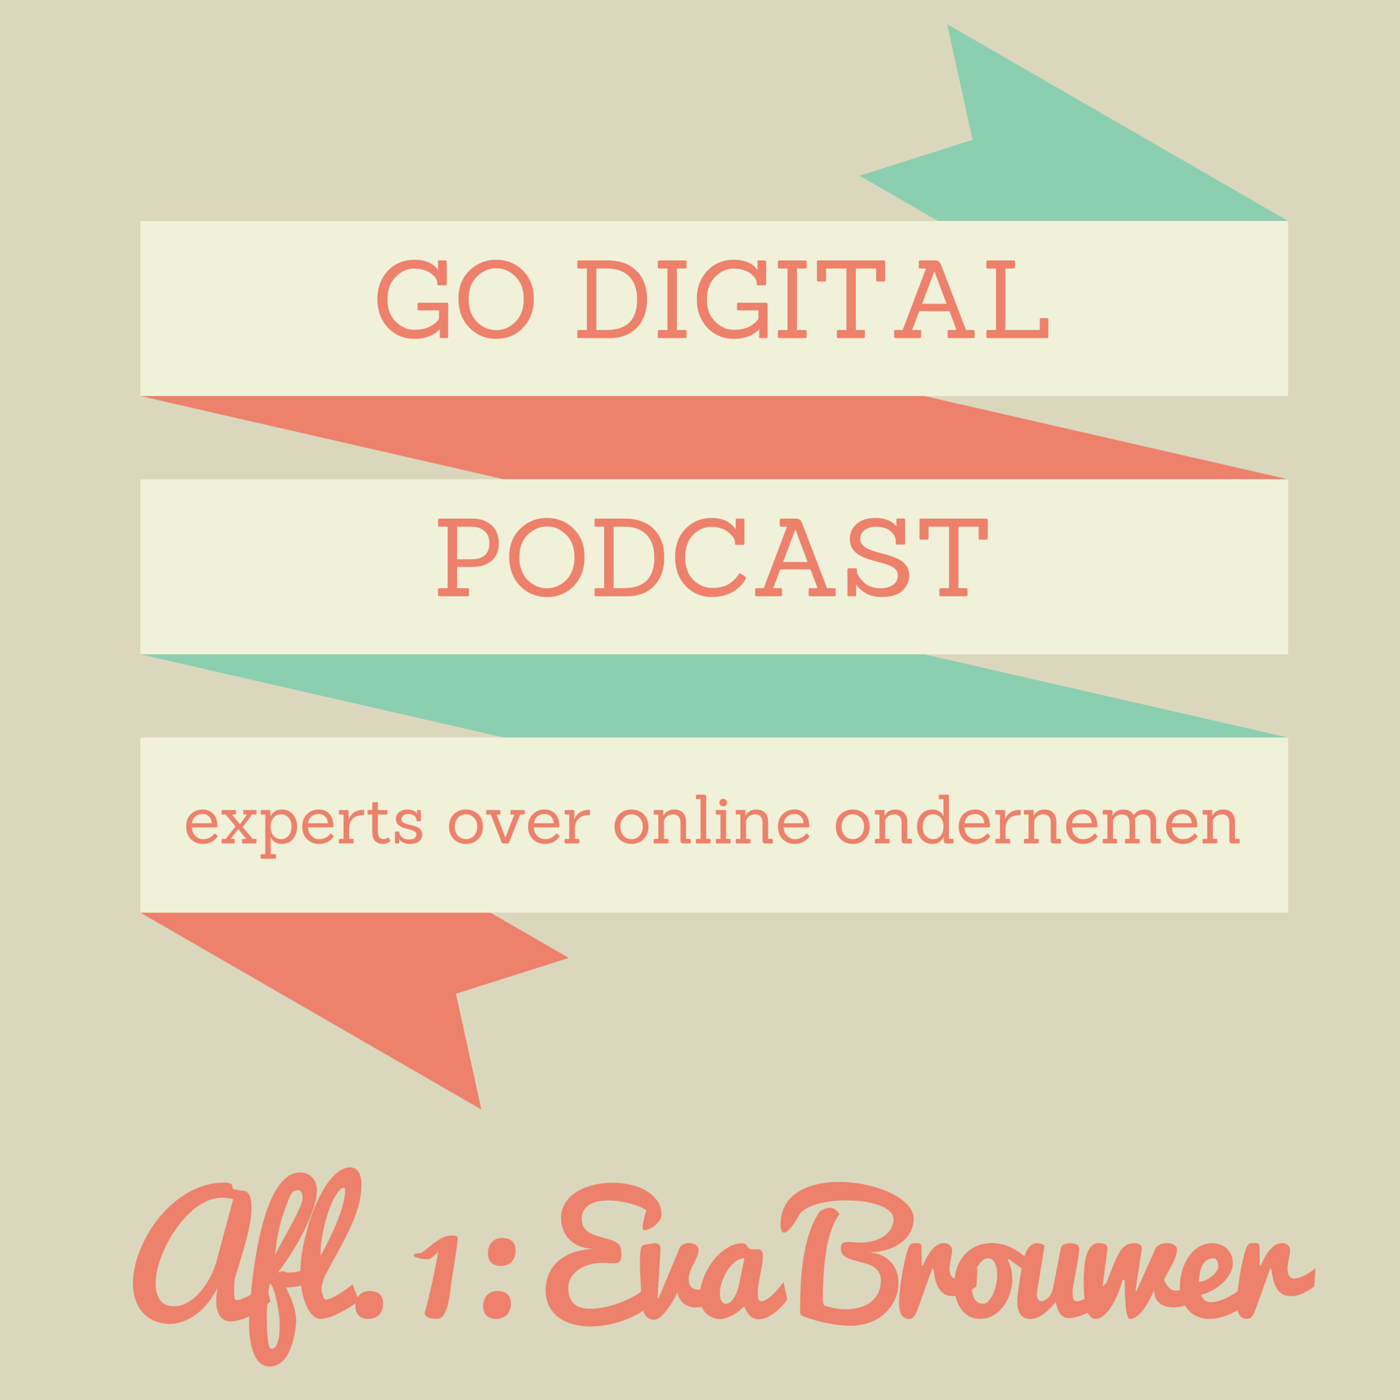 Go Digital Eva brouwer | digitalants.nl